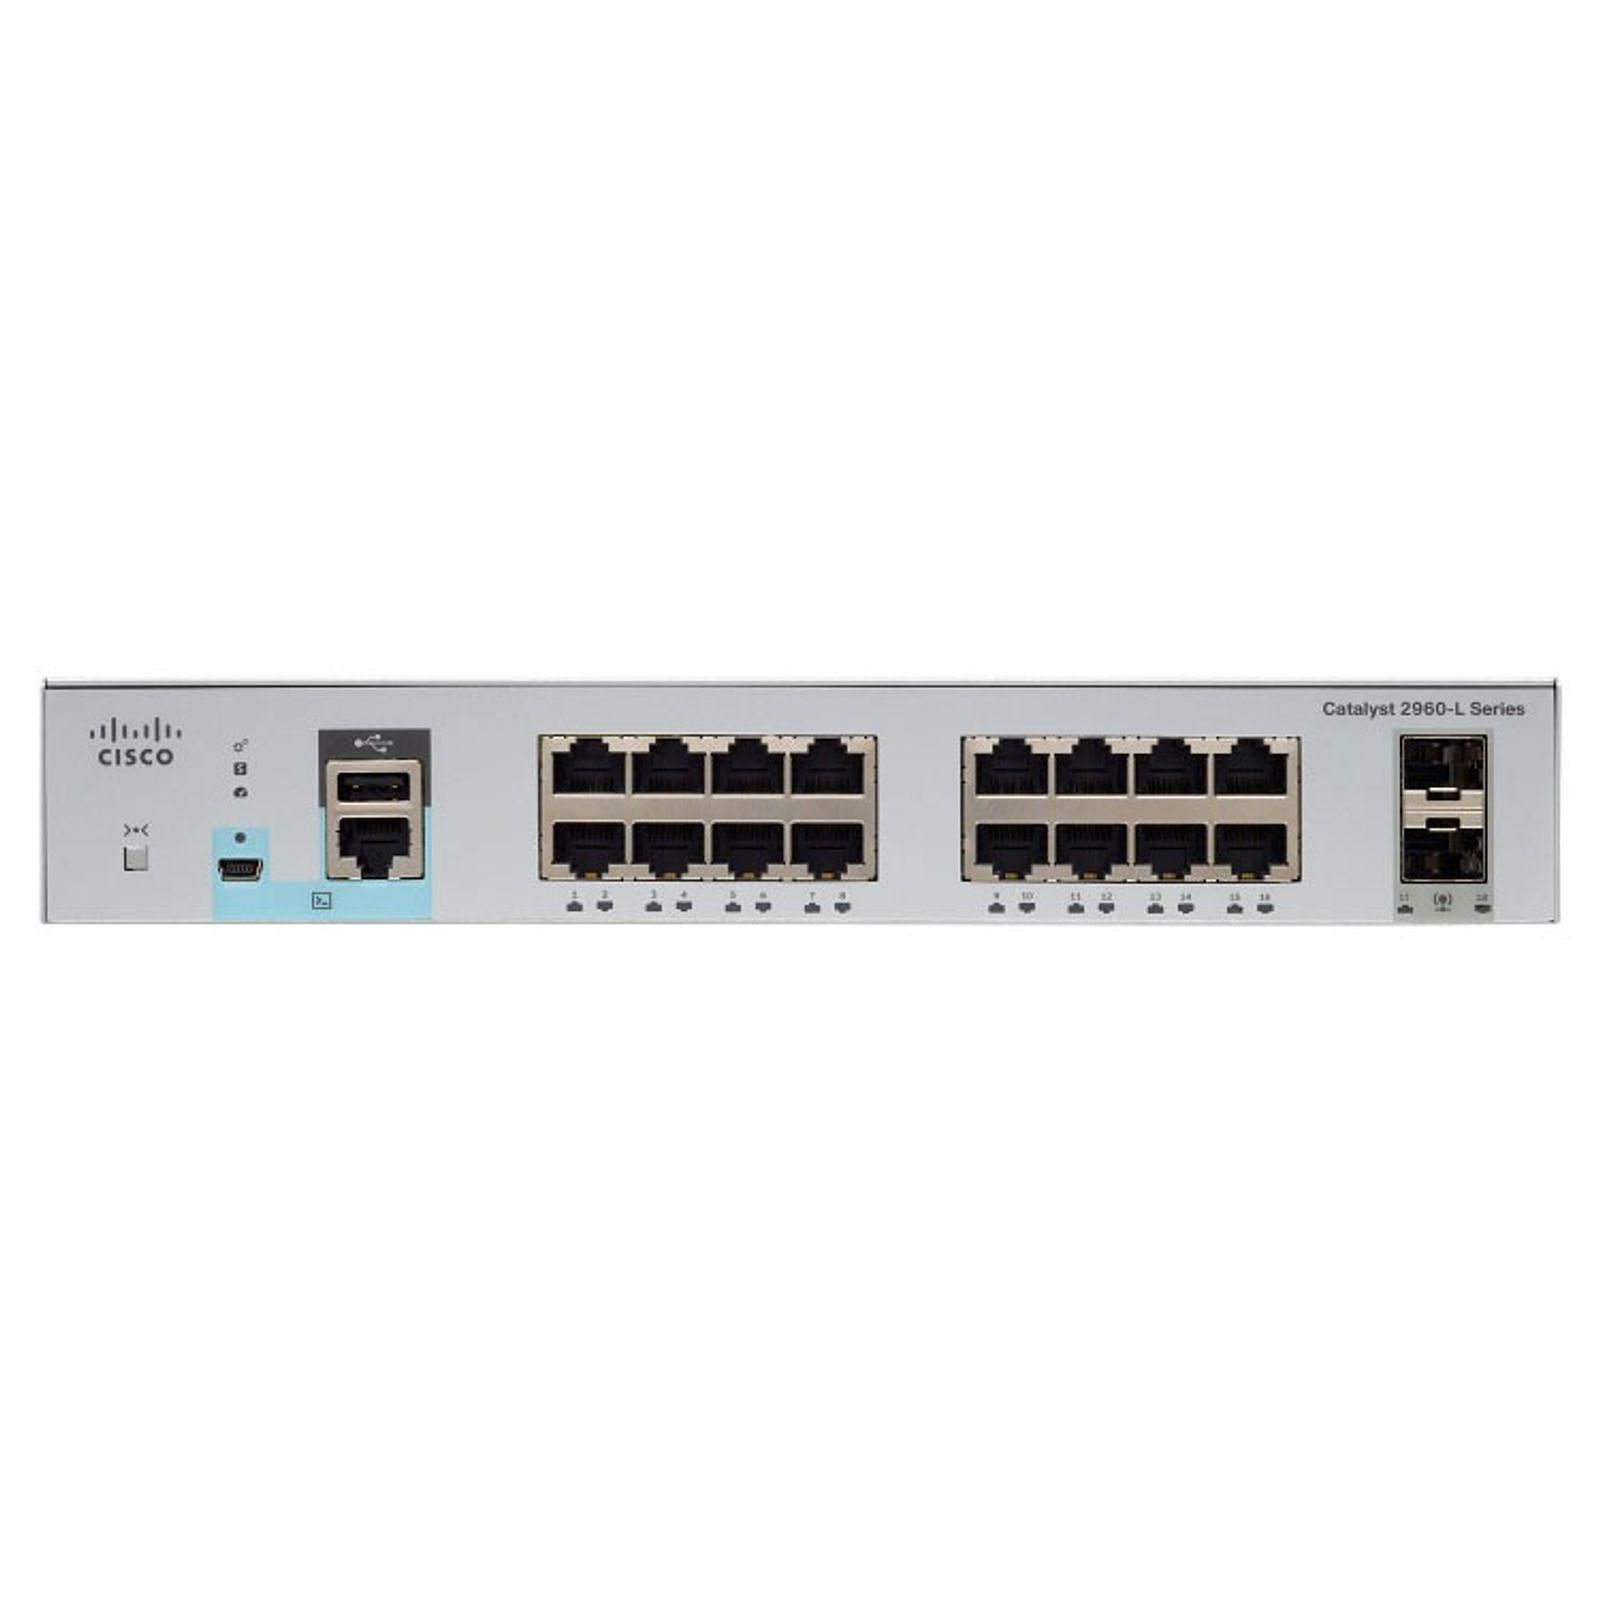 Cisco Catalyst WS-C2960L-16PS-LL Switch PoE+ 16 ports 10/100/1000 Mbps + 2 ports SFP